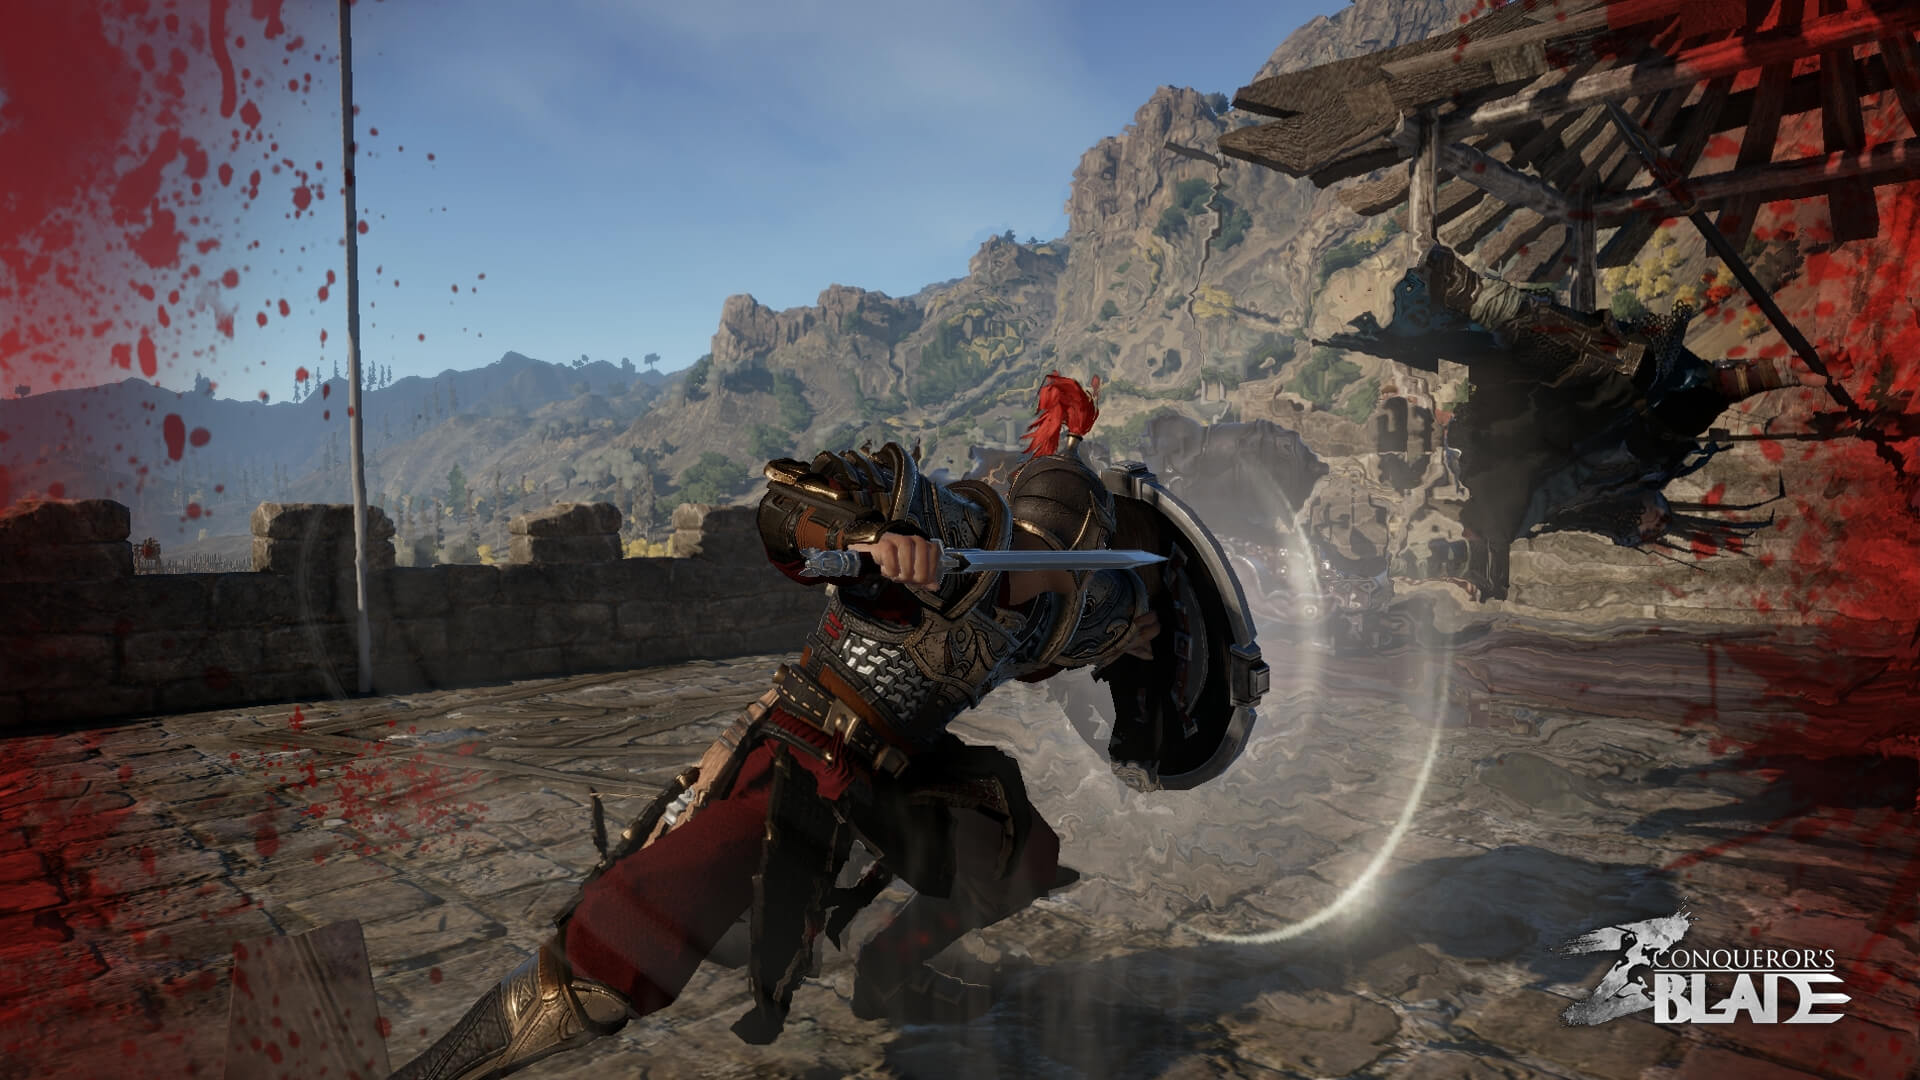 Conqueror's Blade Screenshots